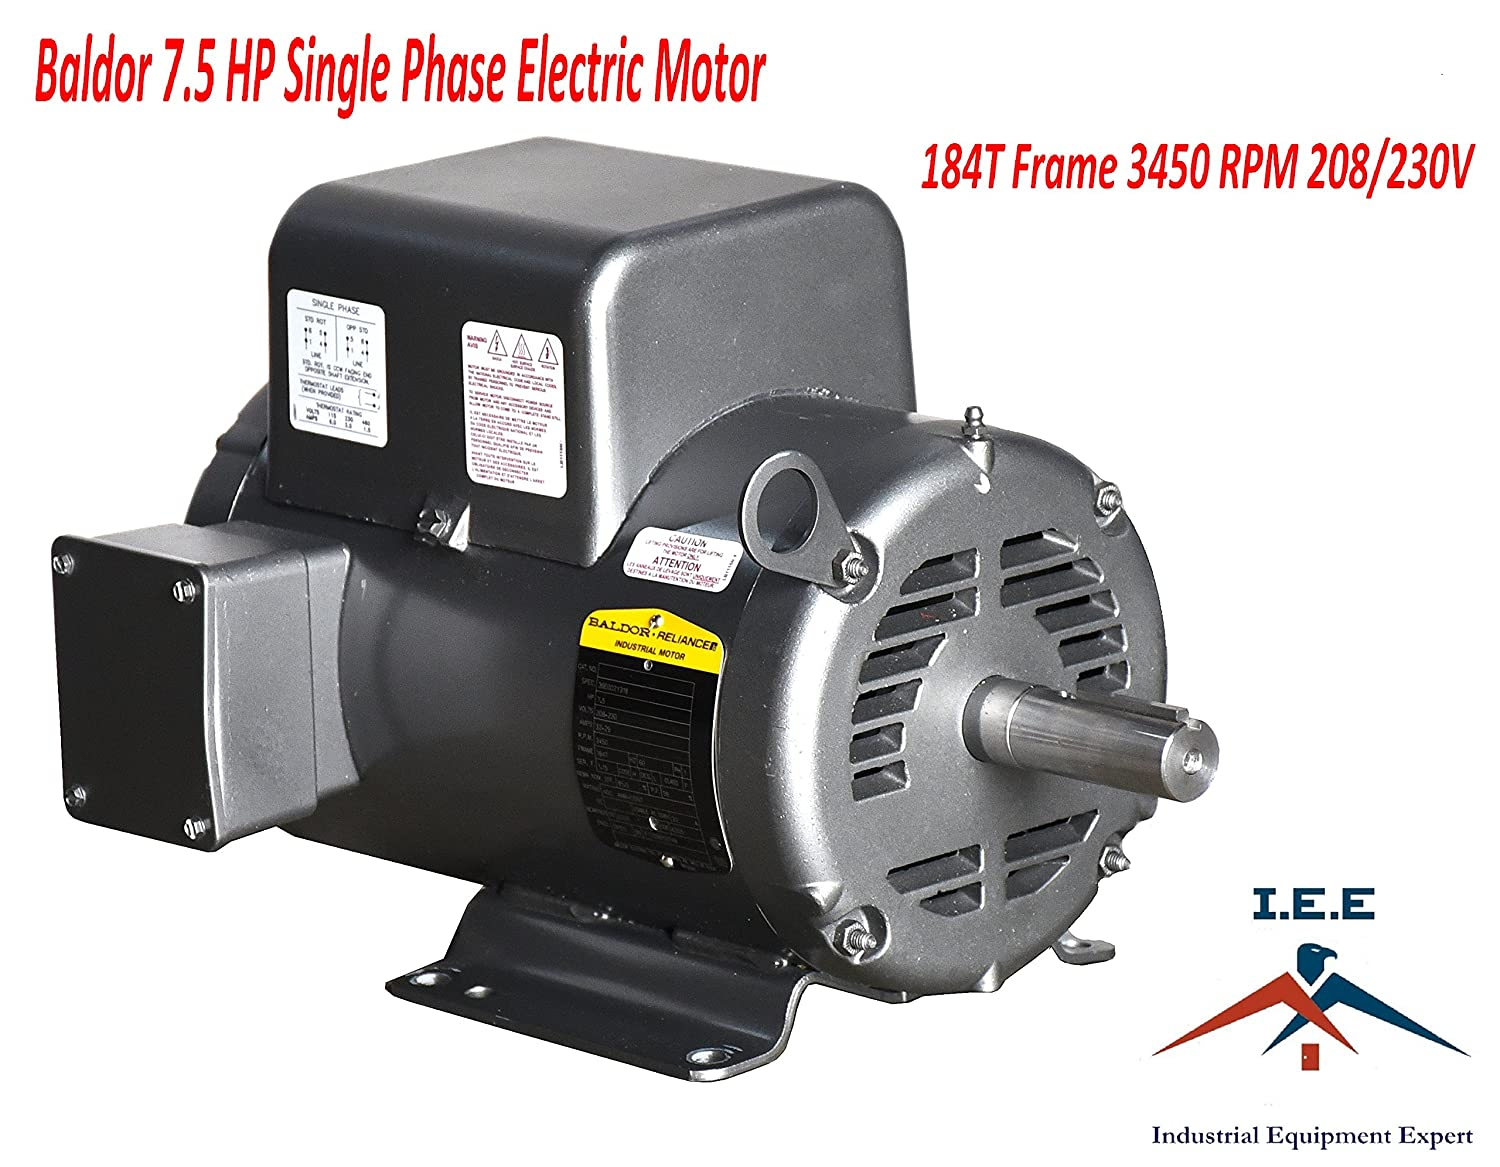 electric motor. Baldor 7.5 Hp Electric Motor 3450 RPM 184 T Frame 1 Ph Single Phase 208/230 Volt - Amazon.com